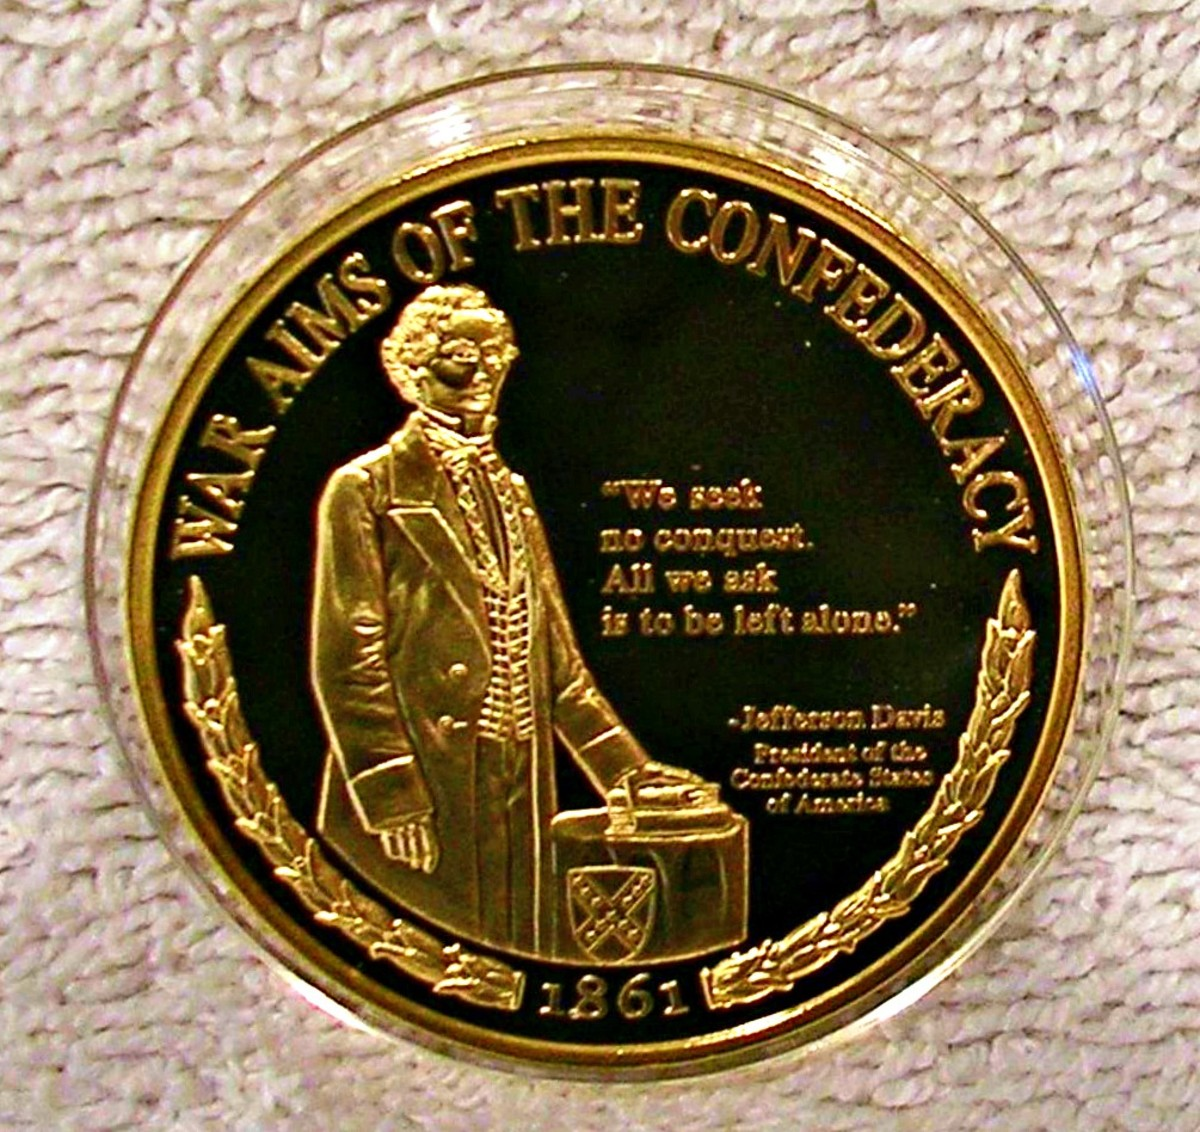 "Confederacy War Aims Civil War coin with Jefferson Davis ... ""We seek no conquest.  All we ask is to be left alone."" Made by the American Mint  this commemorative Medallion is part of their Civil War collection."